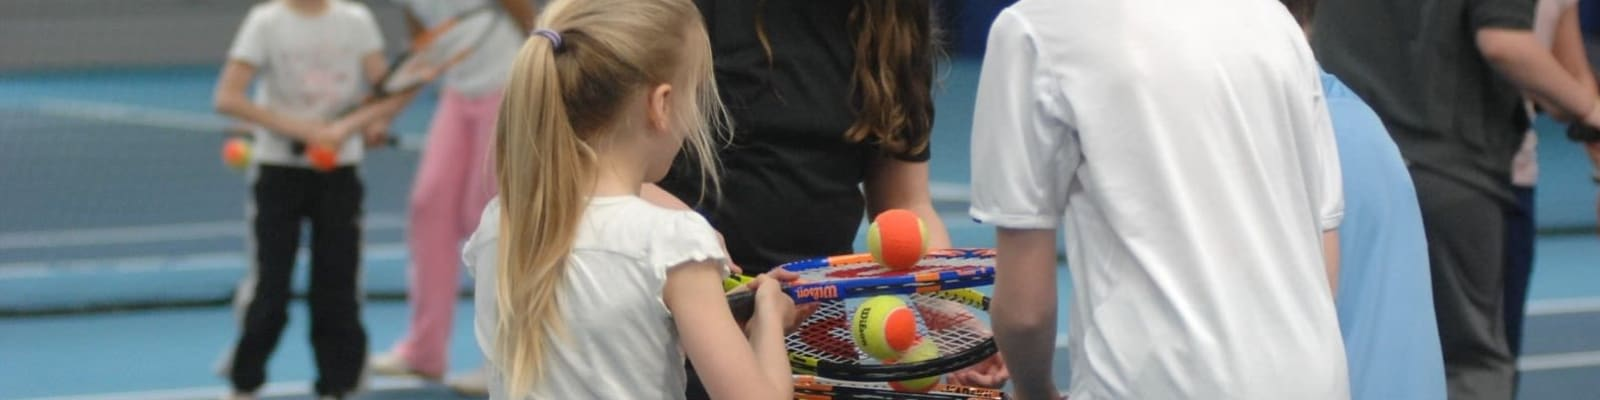 Free Tennis Sessions For Children With Additional Needs